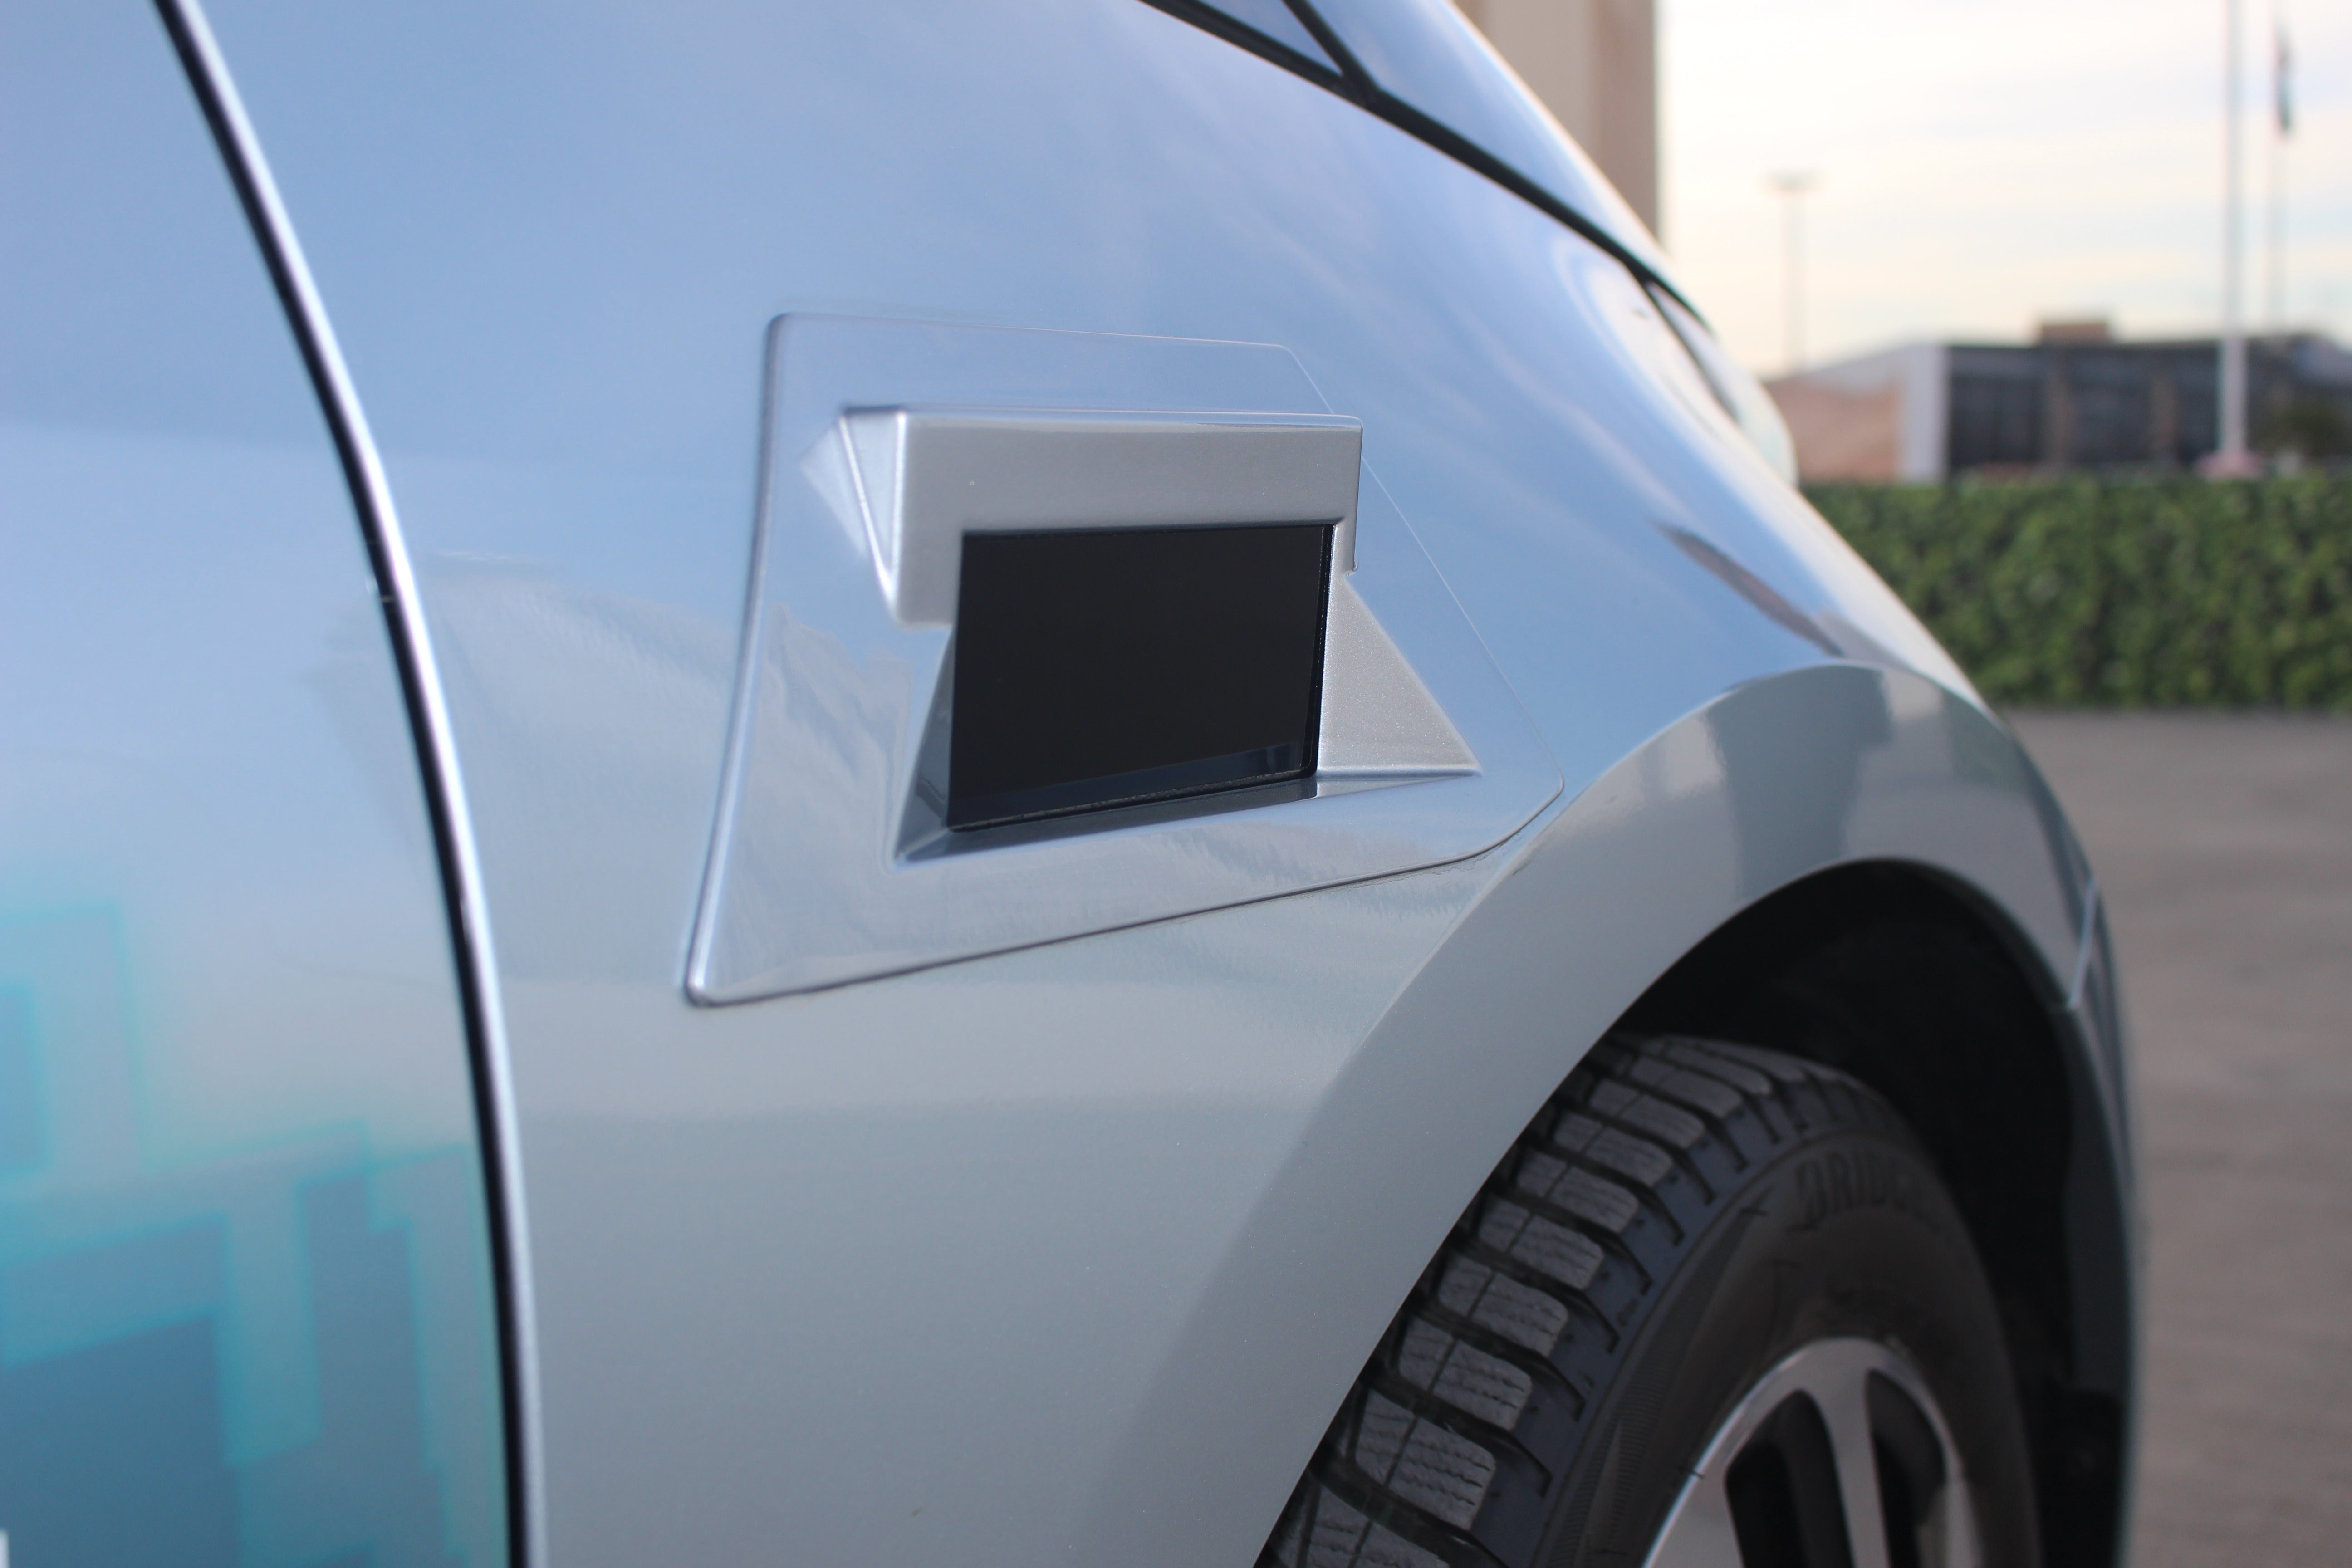 garage makes parking sensor sense assist that technology designs car